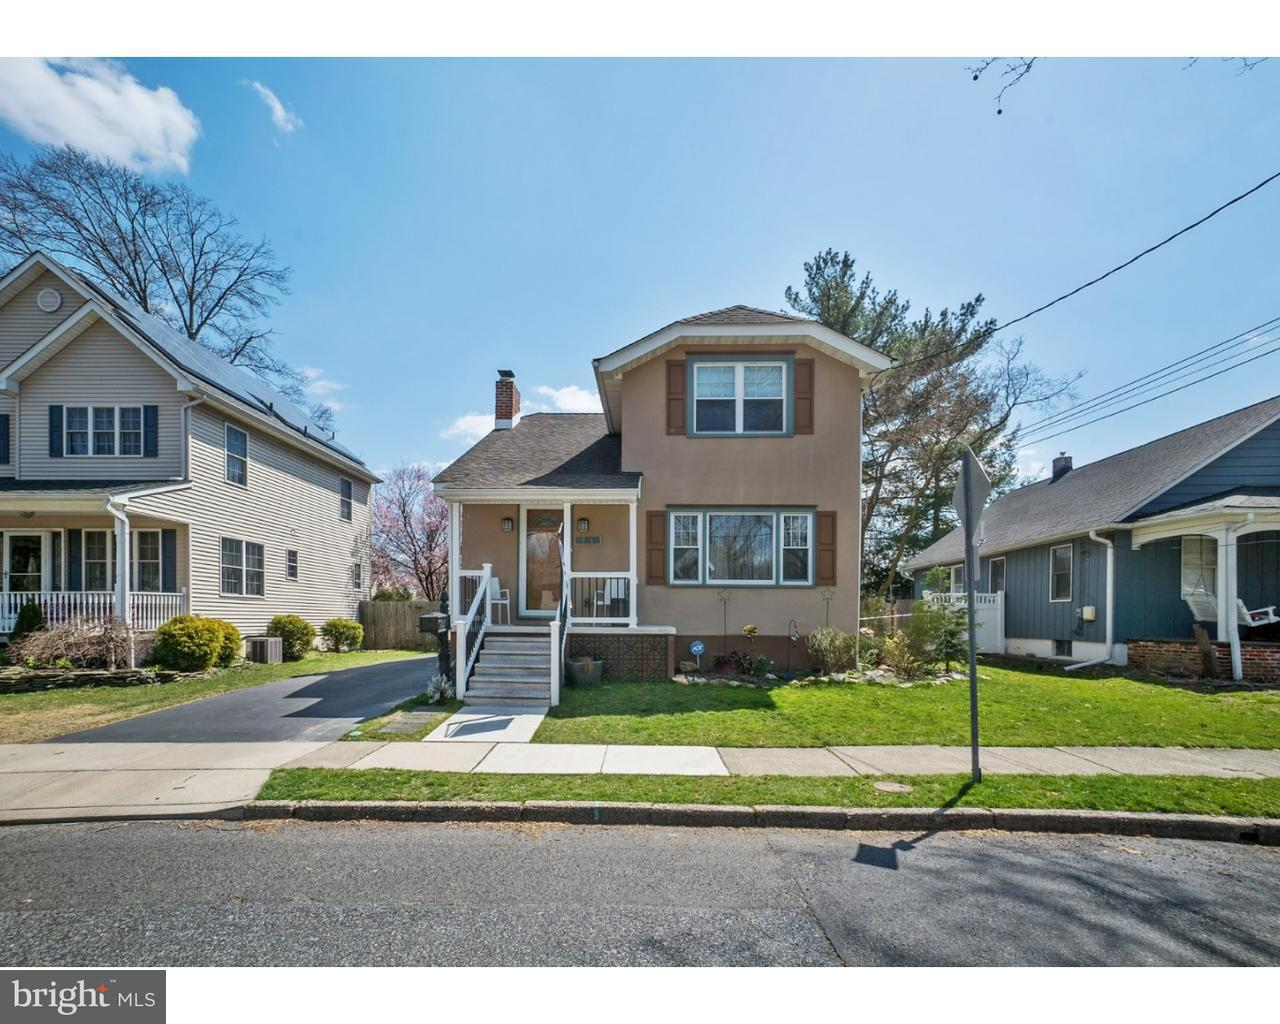 Single Family Home for Sale at 306 AUSTIN Avenue Barrington, New Jersey 08007 United States